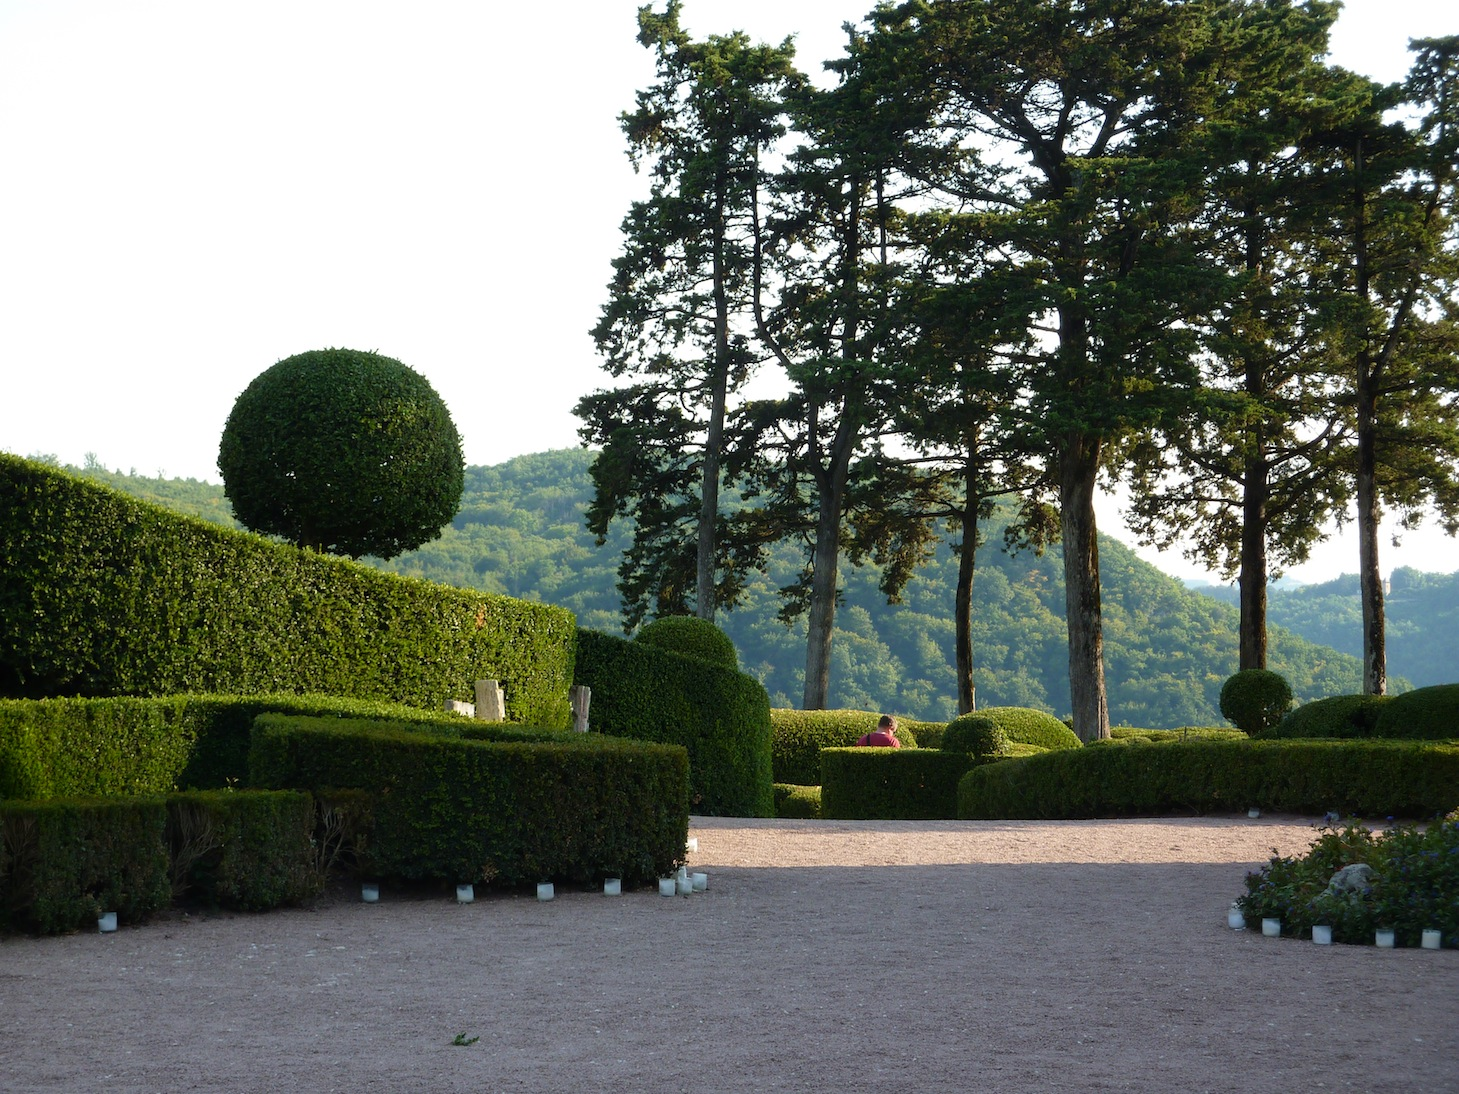 meabh warburton les jardins suspendus de marqueyssac. Black Bedroom Furniture Sets. Home Design Ideas